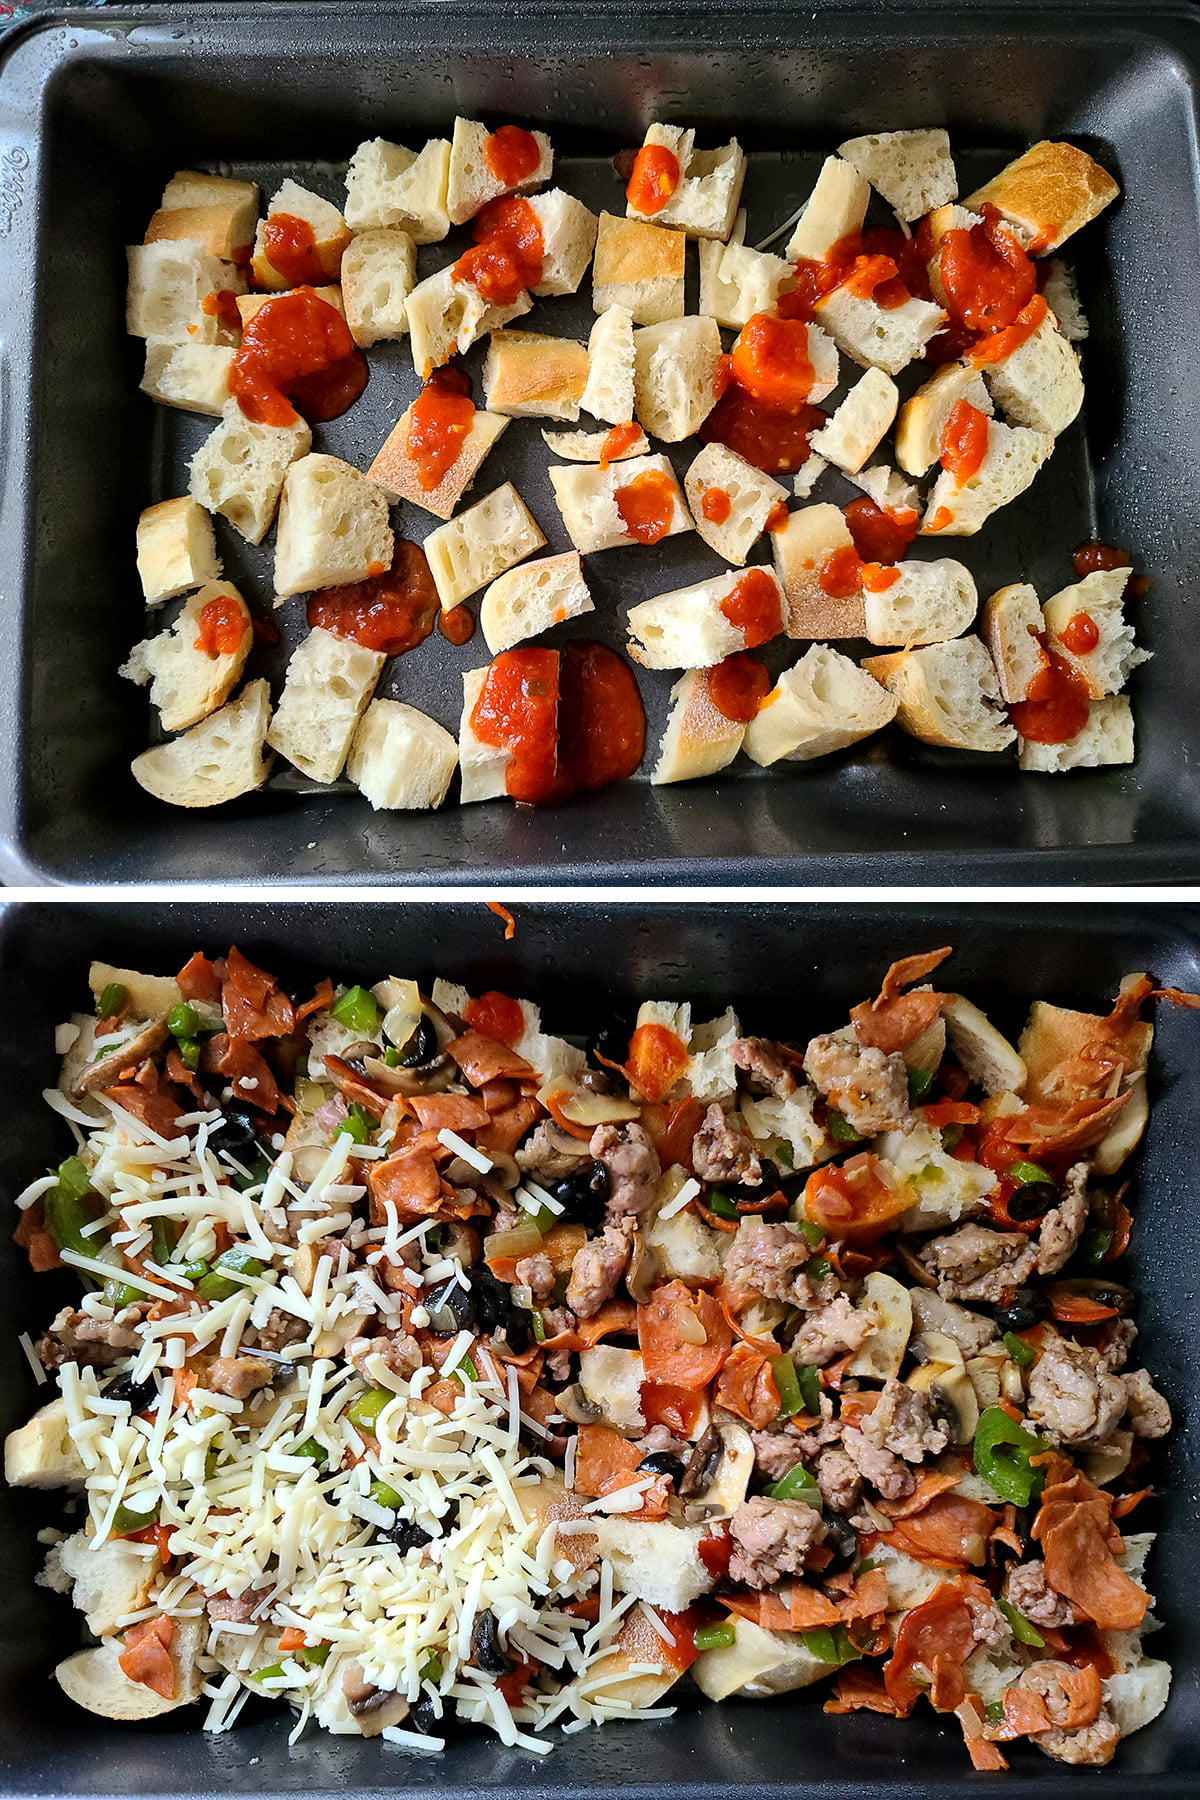 A two part compilation image showing bread and marinara sauce in a baking pan, then toppings and cheese covering it in the same pan.